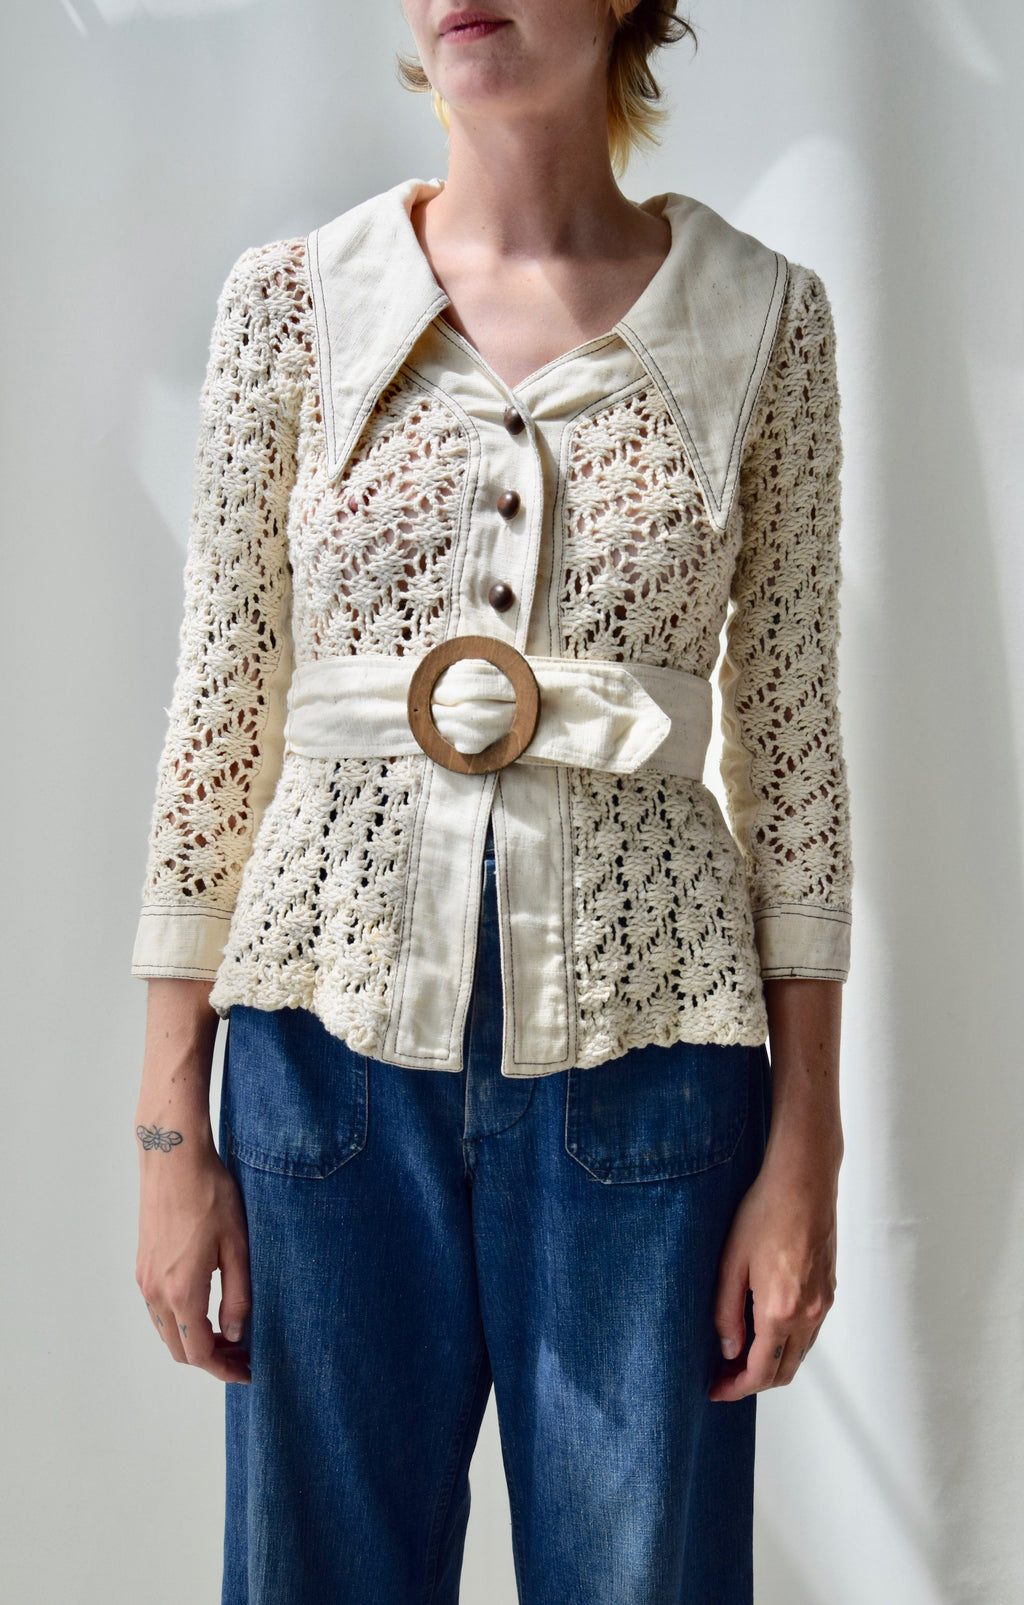 1970's Crocheted Cotton Jacket Top